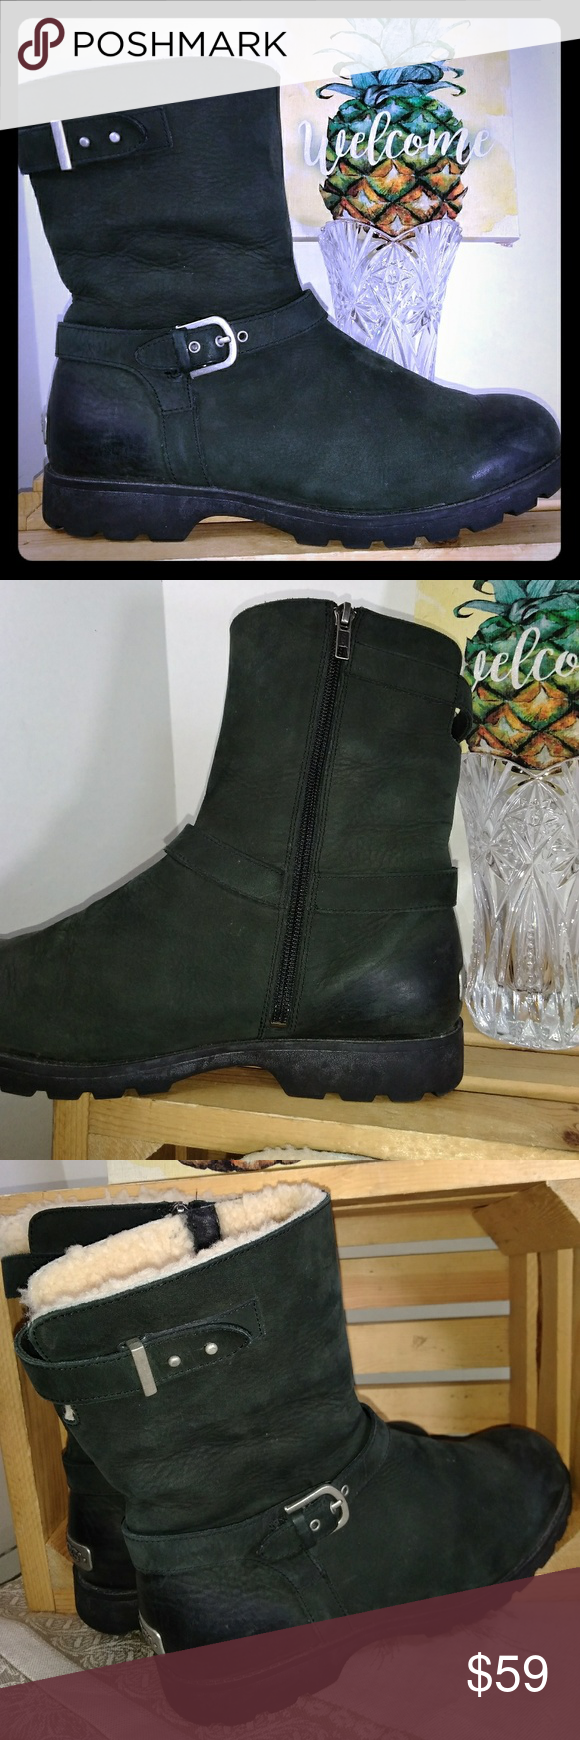 5f40445c9a4 UGG Grandle Size 10 Ankle Boots Leather Preowned, very good ...